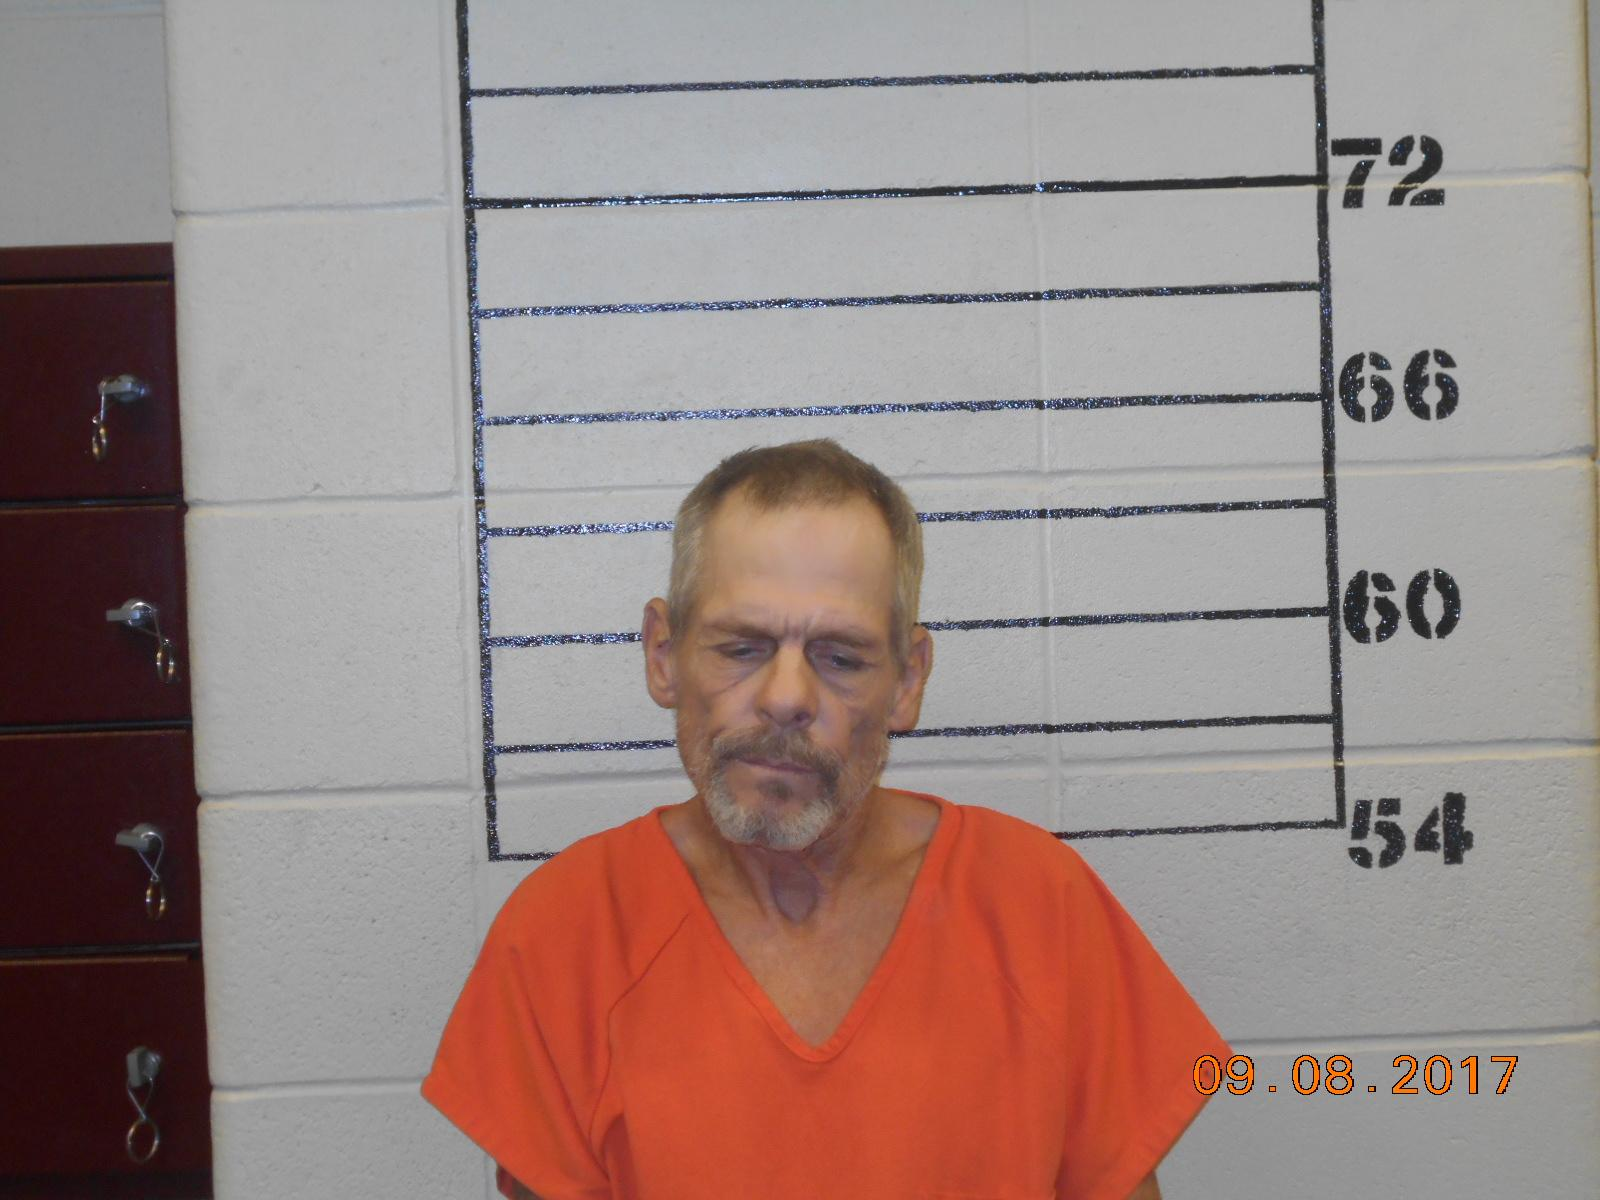 Norman Ogle, 58, was arrested Sept. 8 in Cushing on complaints of Possession of CDS Methamphetamine within 1000 feet of a school, Possession of Marijuana and Possession of Drug Paraphernalia. (Cushing Police Department)